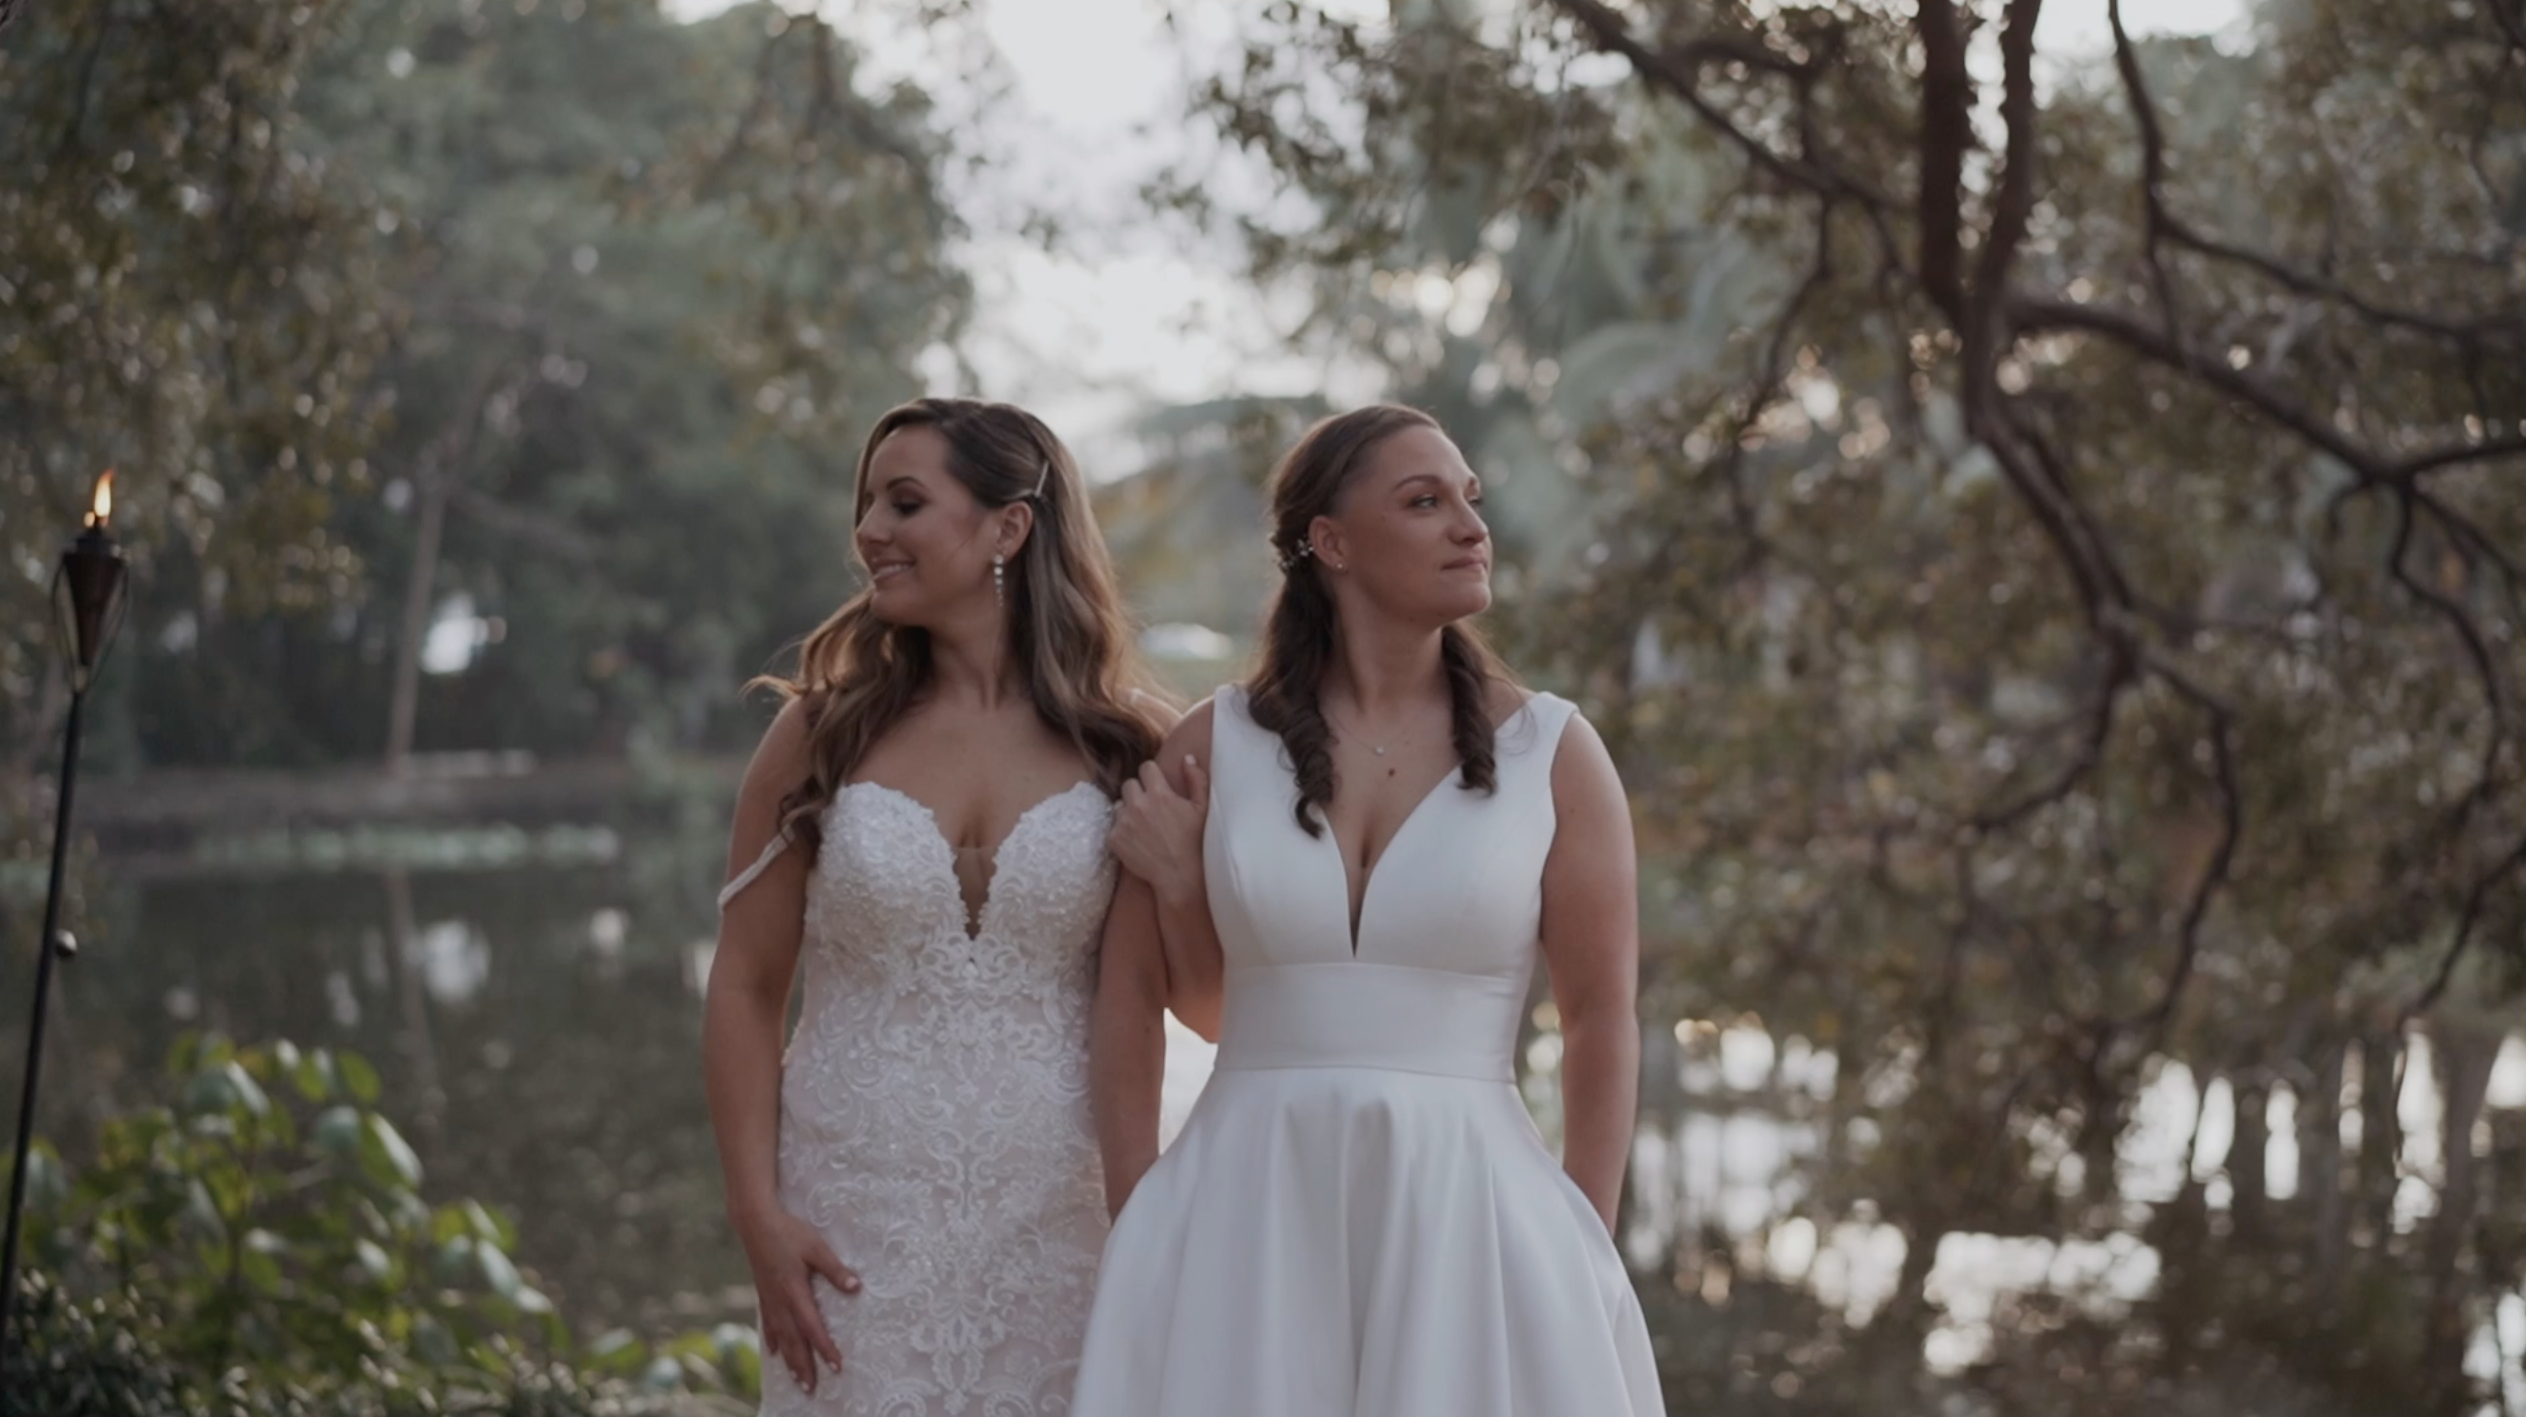 Lauren + Vanessa | Davie, Florida | Living Sculpture Sanctuary